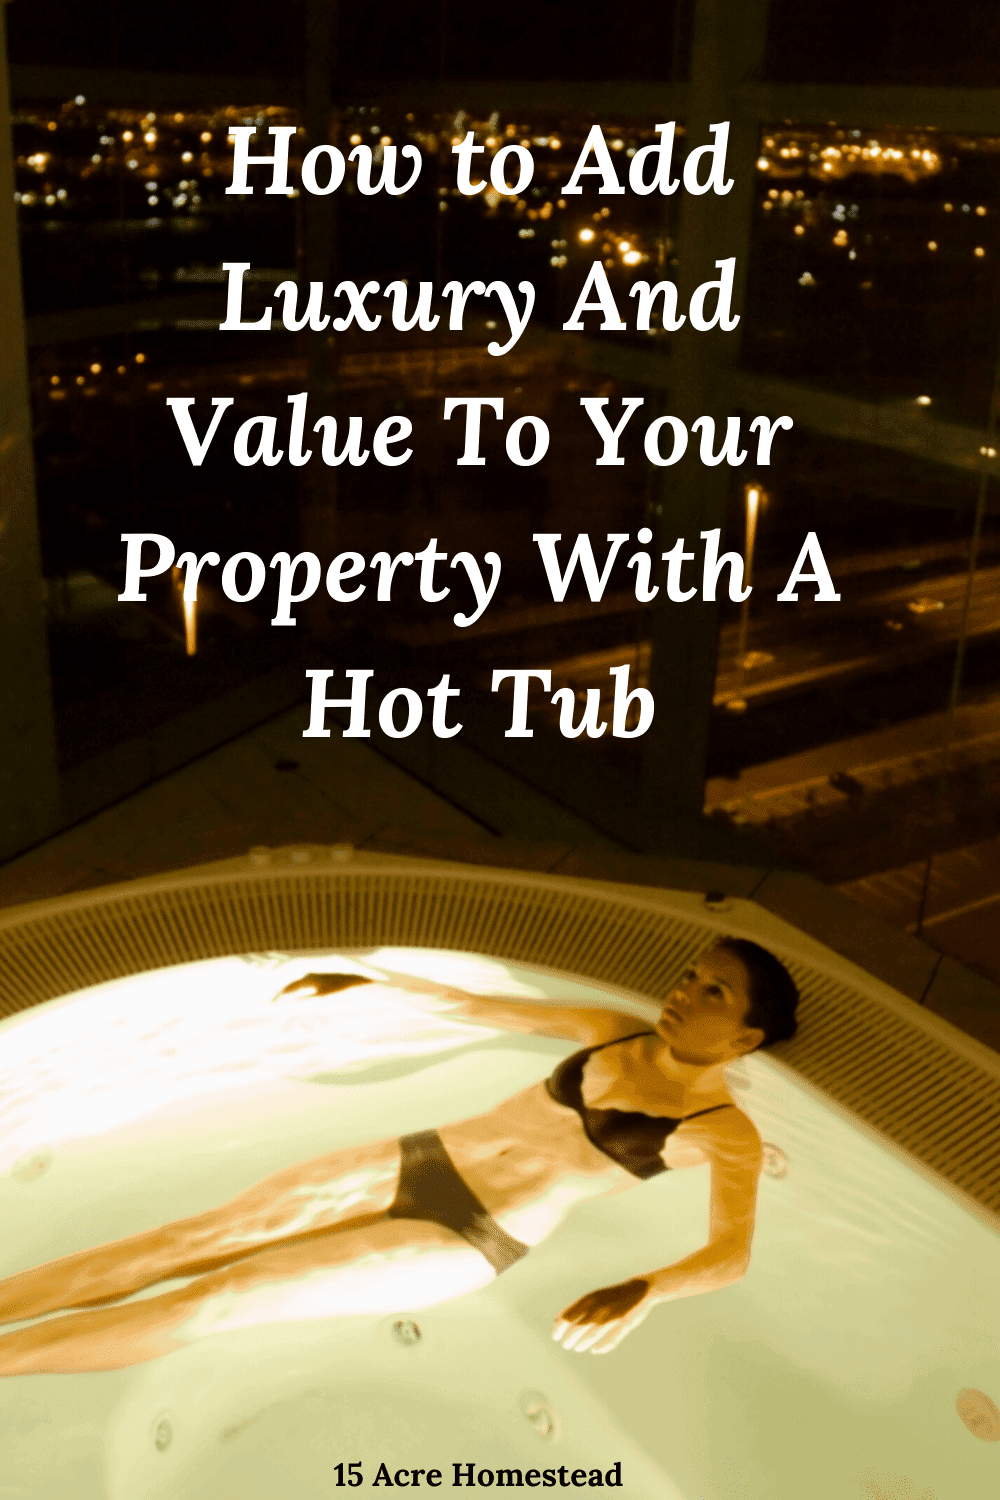 Doing your research before installing a hot tub is very important. This post should educate you a bit before making a large investment.